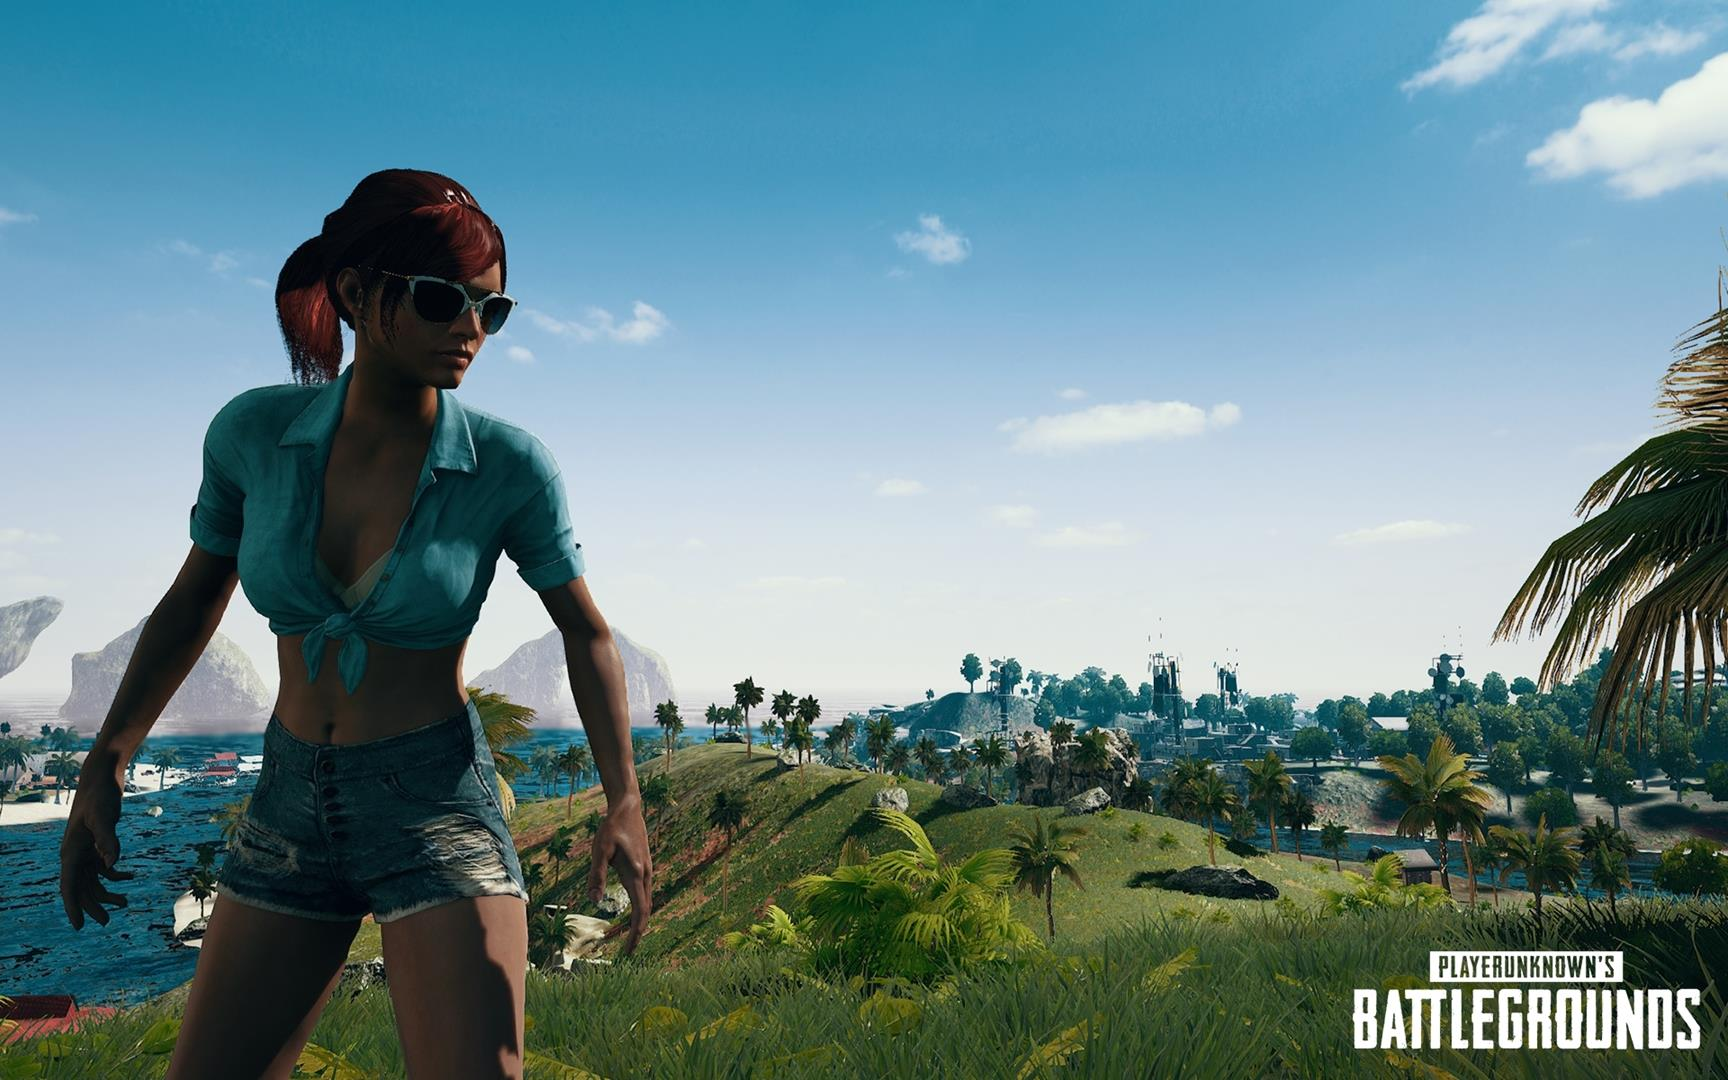 The Arrival Of Pubgs Newest Map Sanhok Is Rapidly Approaching But Before The Map Goes Hits Live Servers We Get One More Chance At Testing It